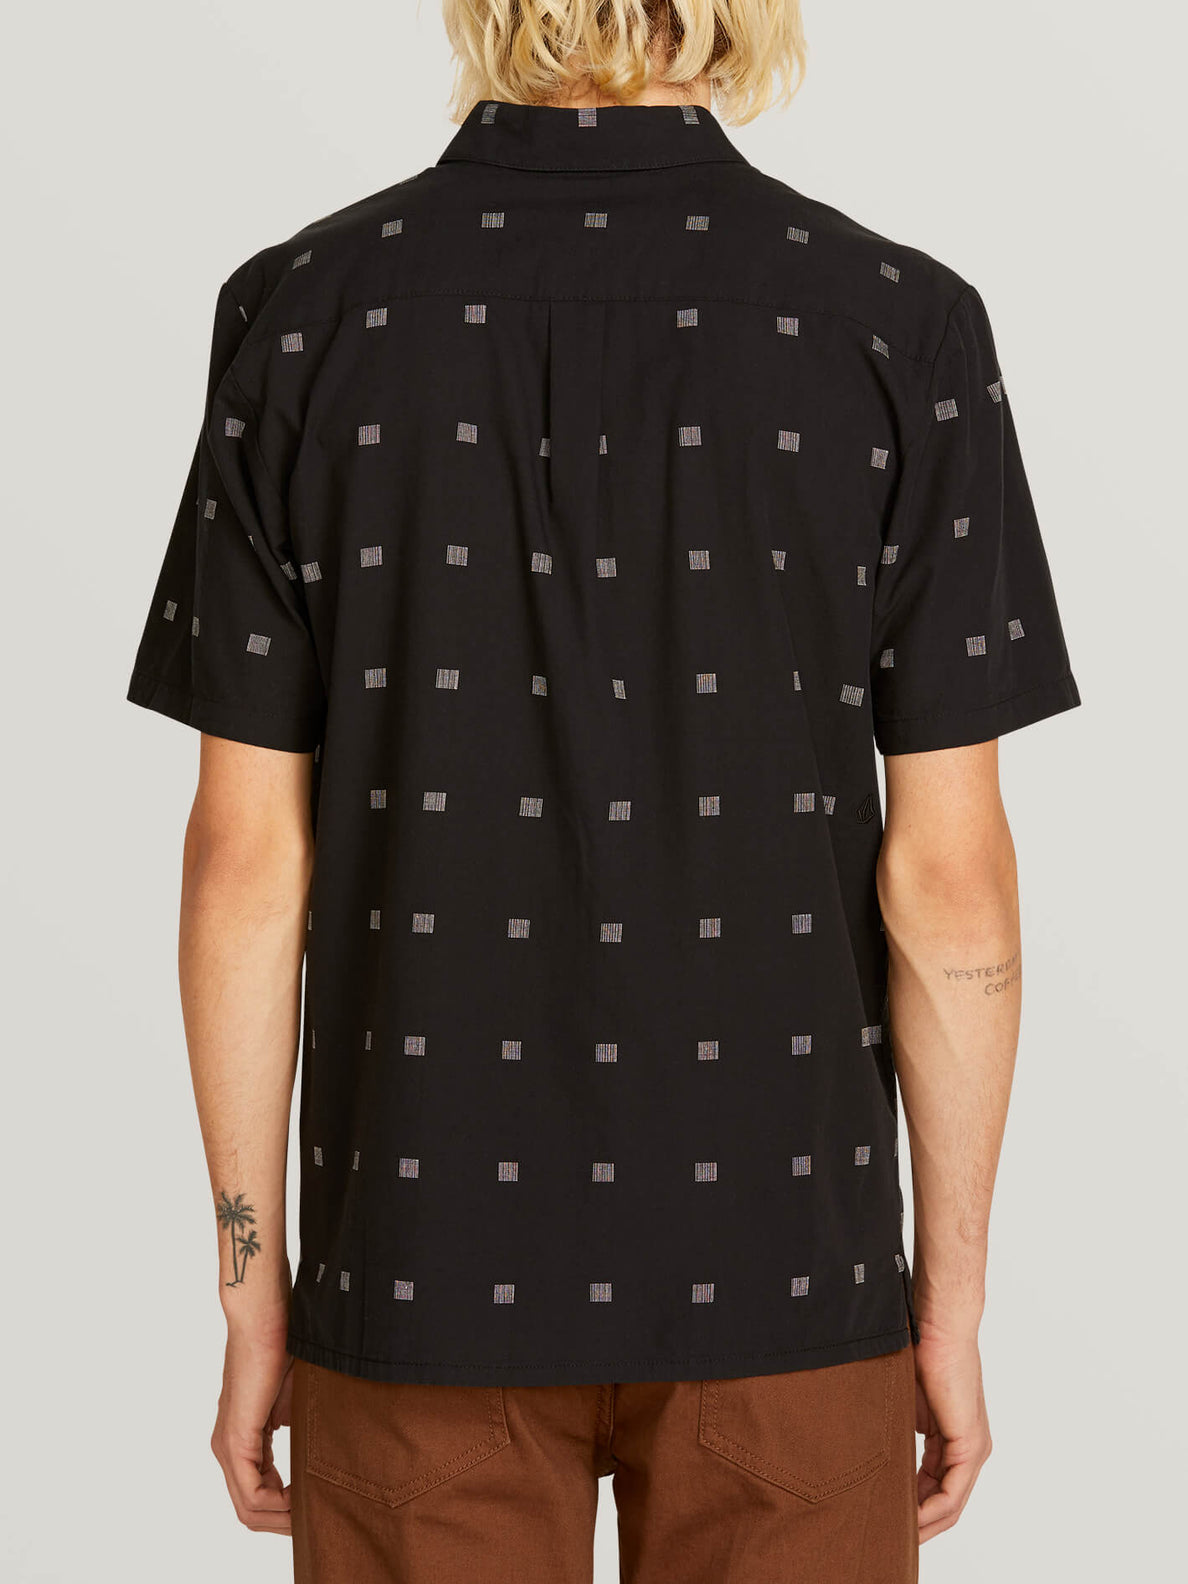 Morty Short Sleeve Shirt In Black, Back View